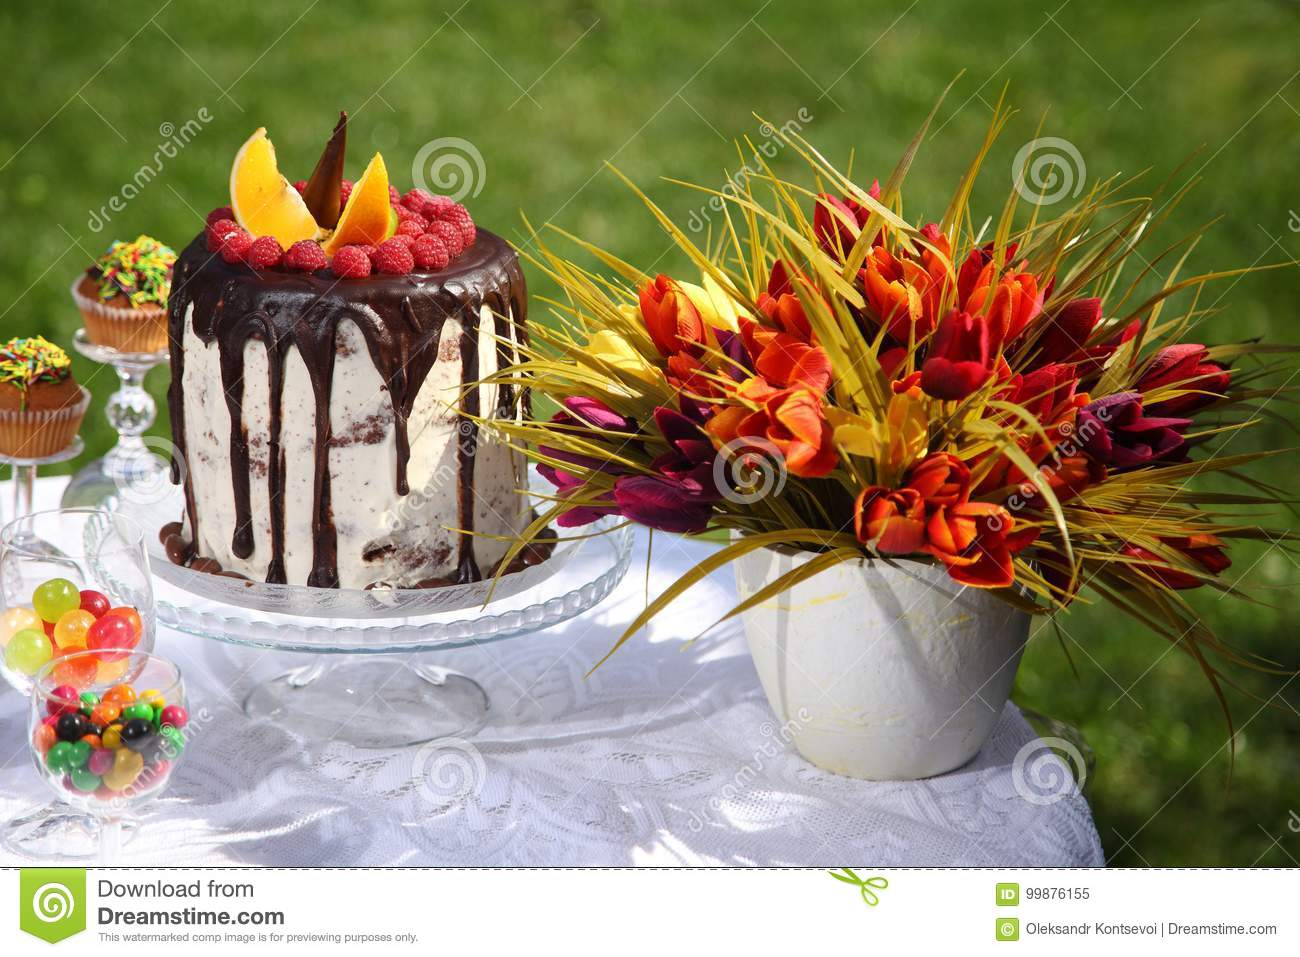 A Festive Table Decorated With Birthday Cake With Flowers And Sweets